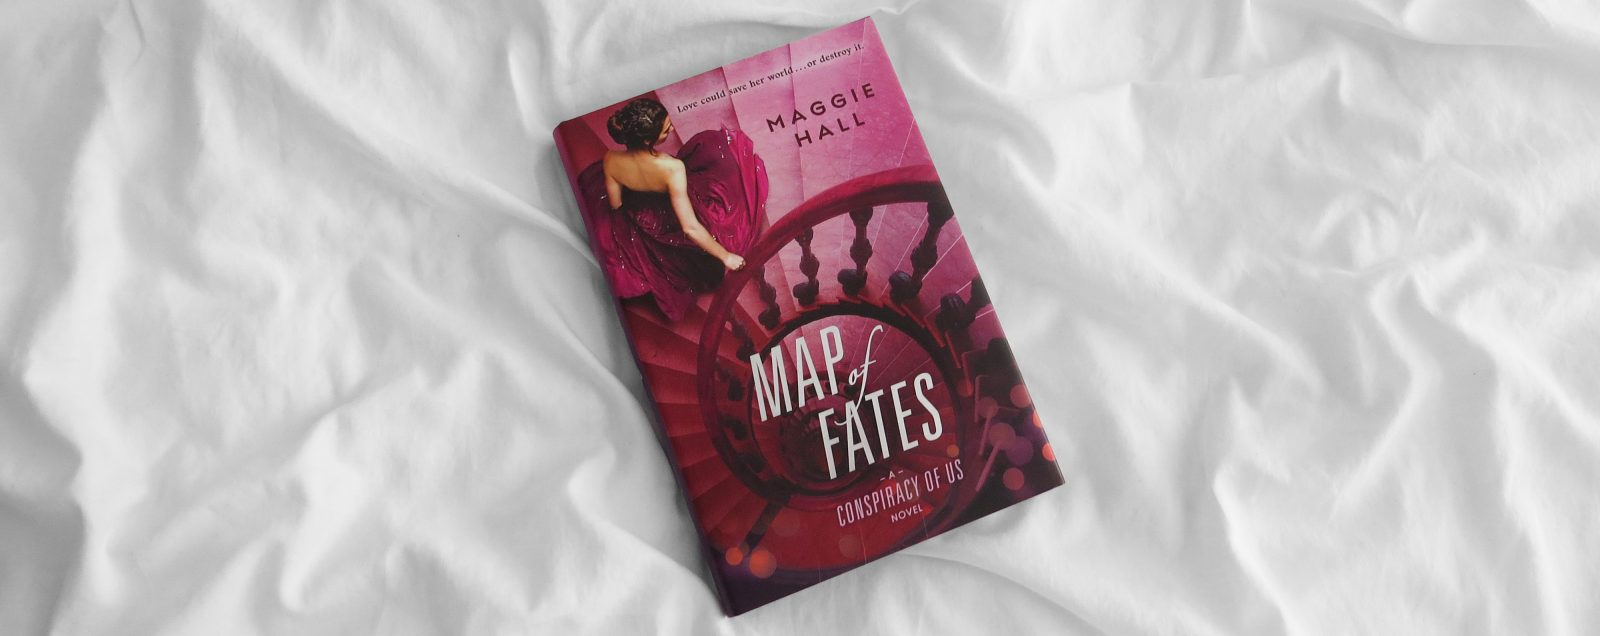 Review | Map of Fates by Maggie Hall